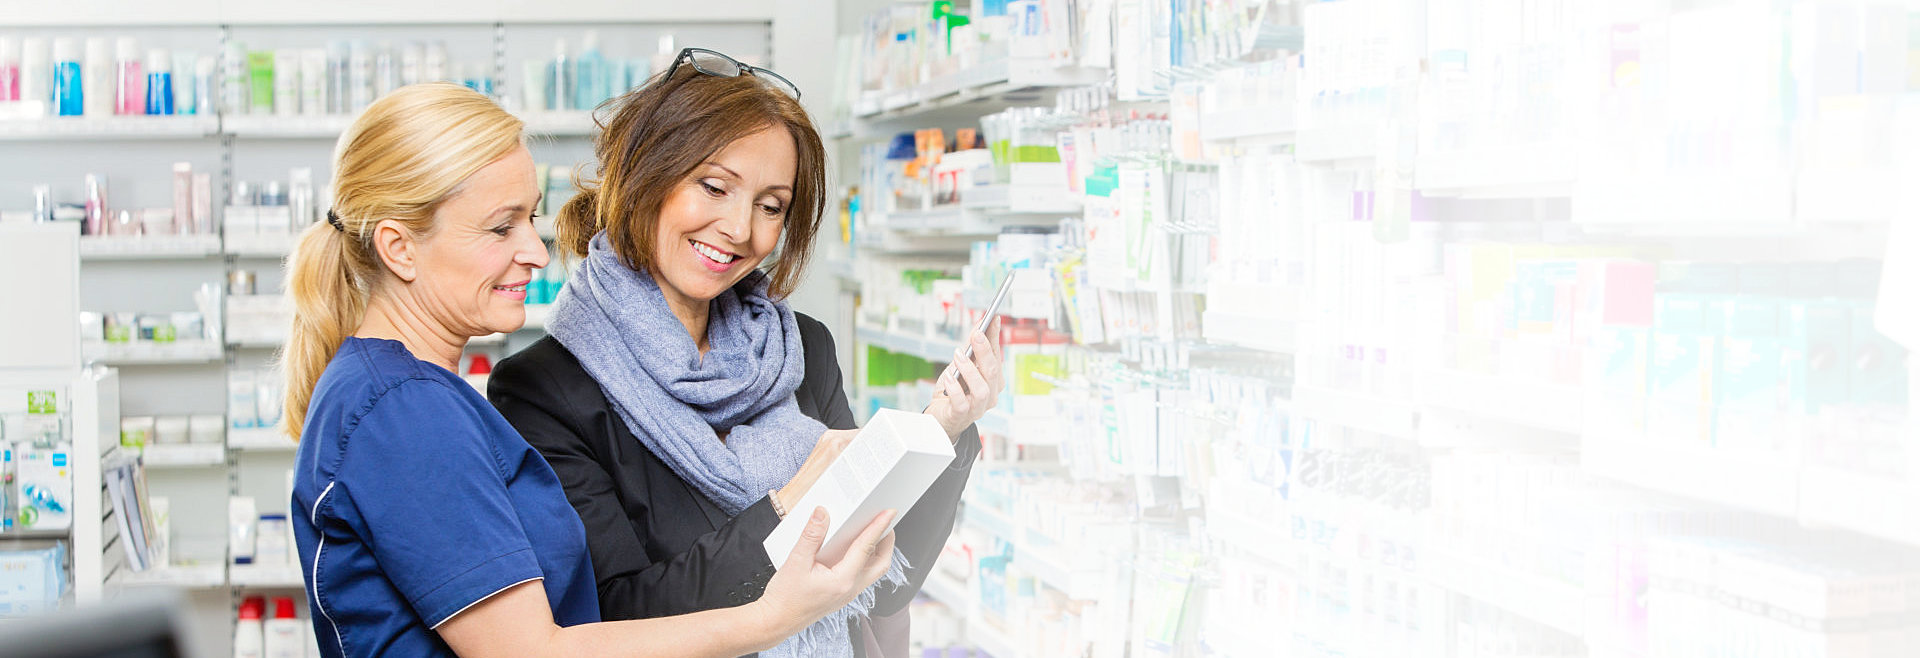 female pharmacist recommending medicine to female customer